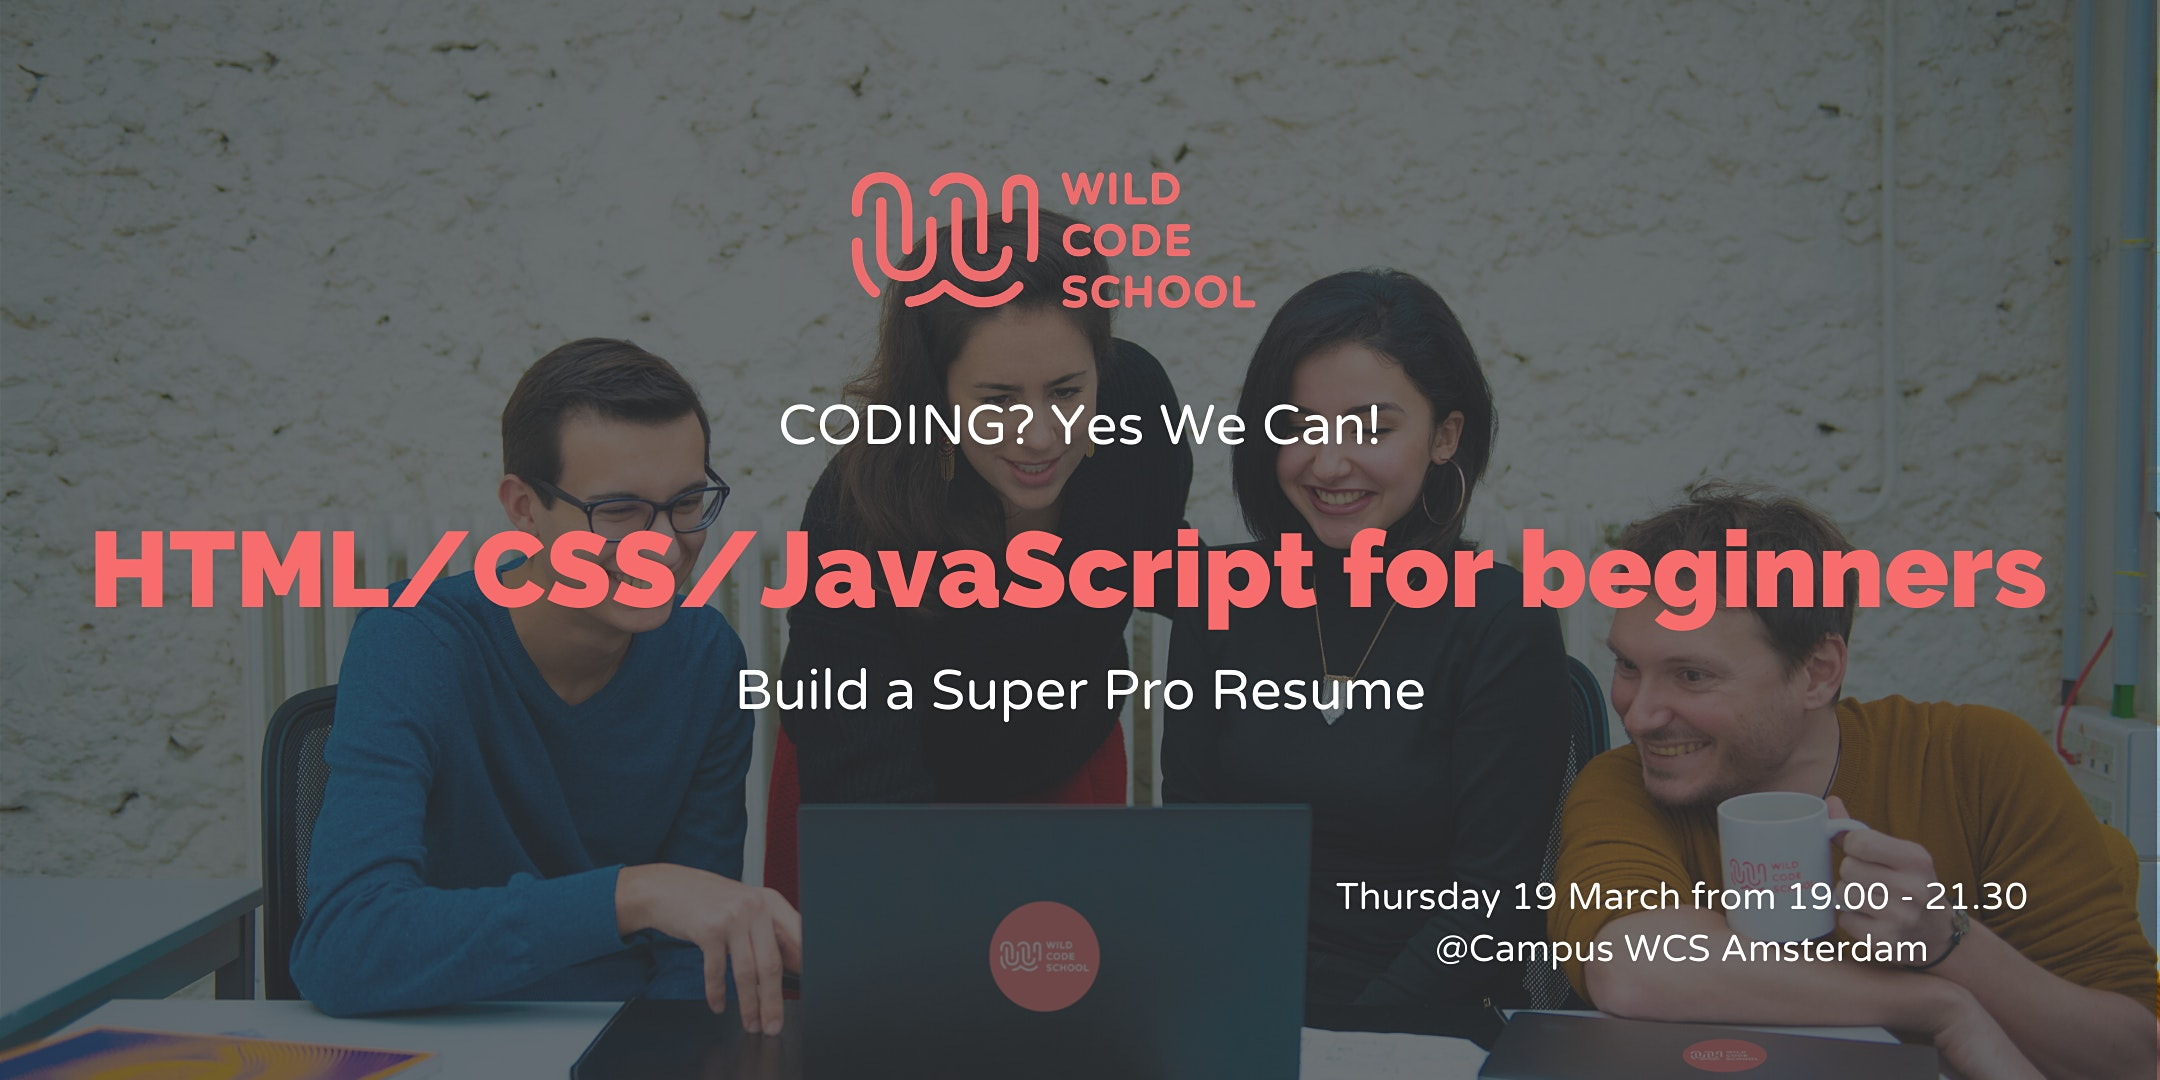 Coding? Yes we can! Build a Super Pro CV with HTML/CSS and JavaScript